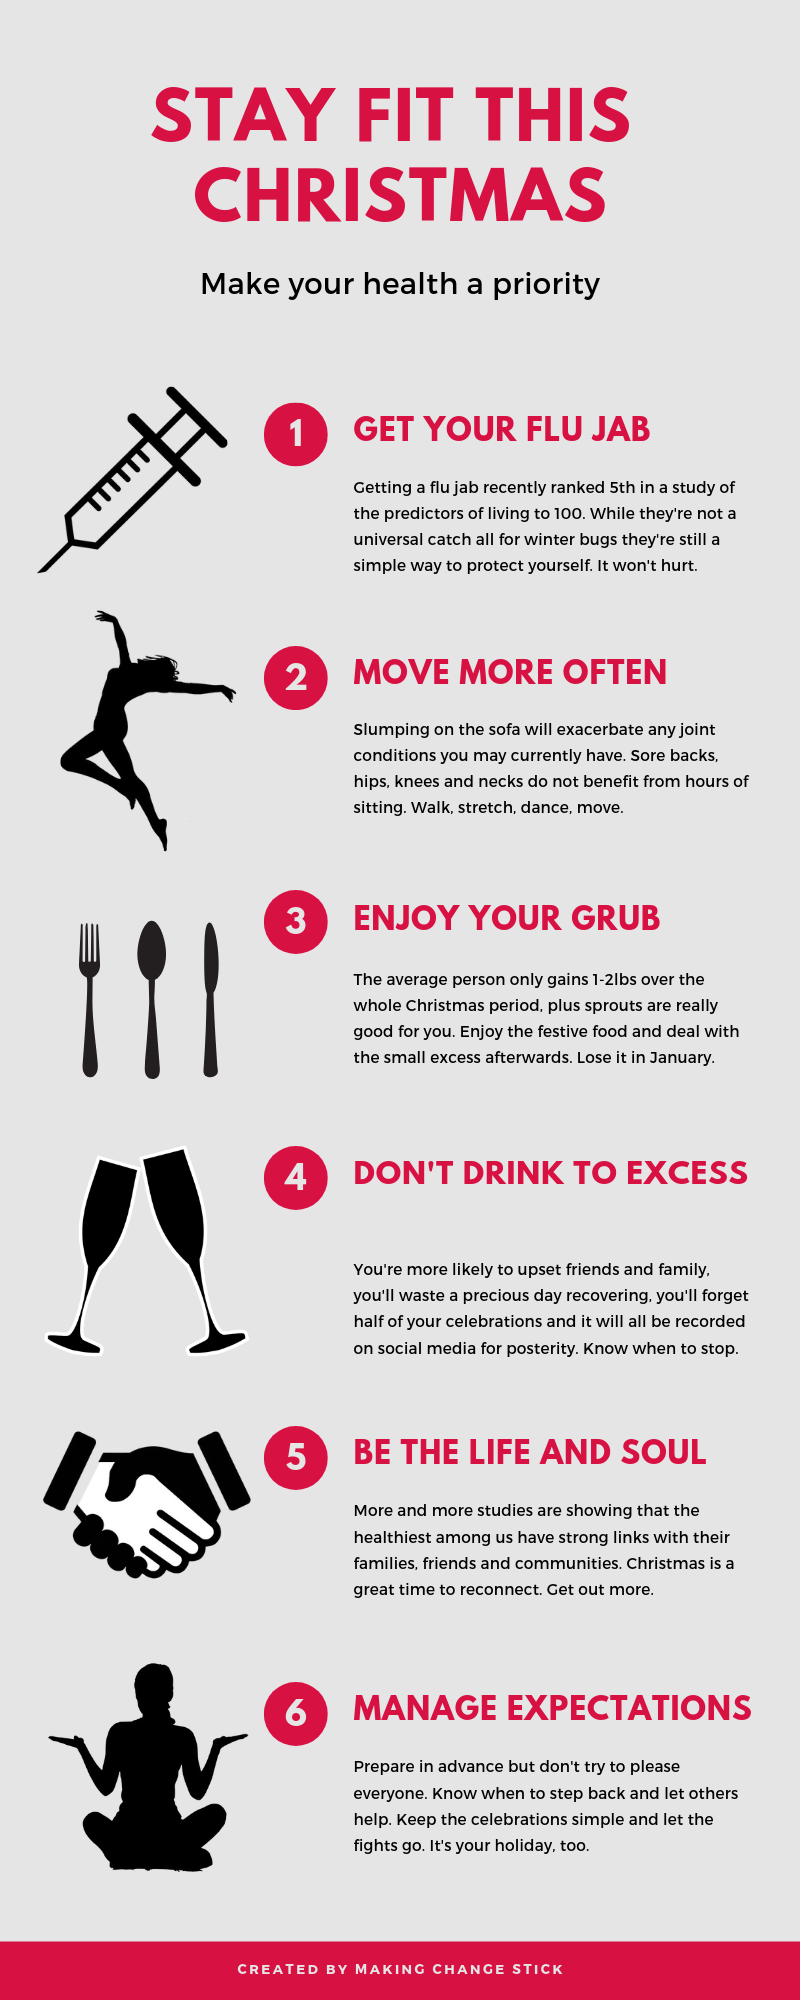 making change stick infographic about how to stay fit this Christmas